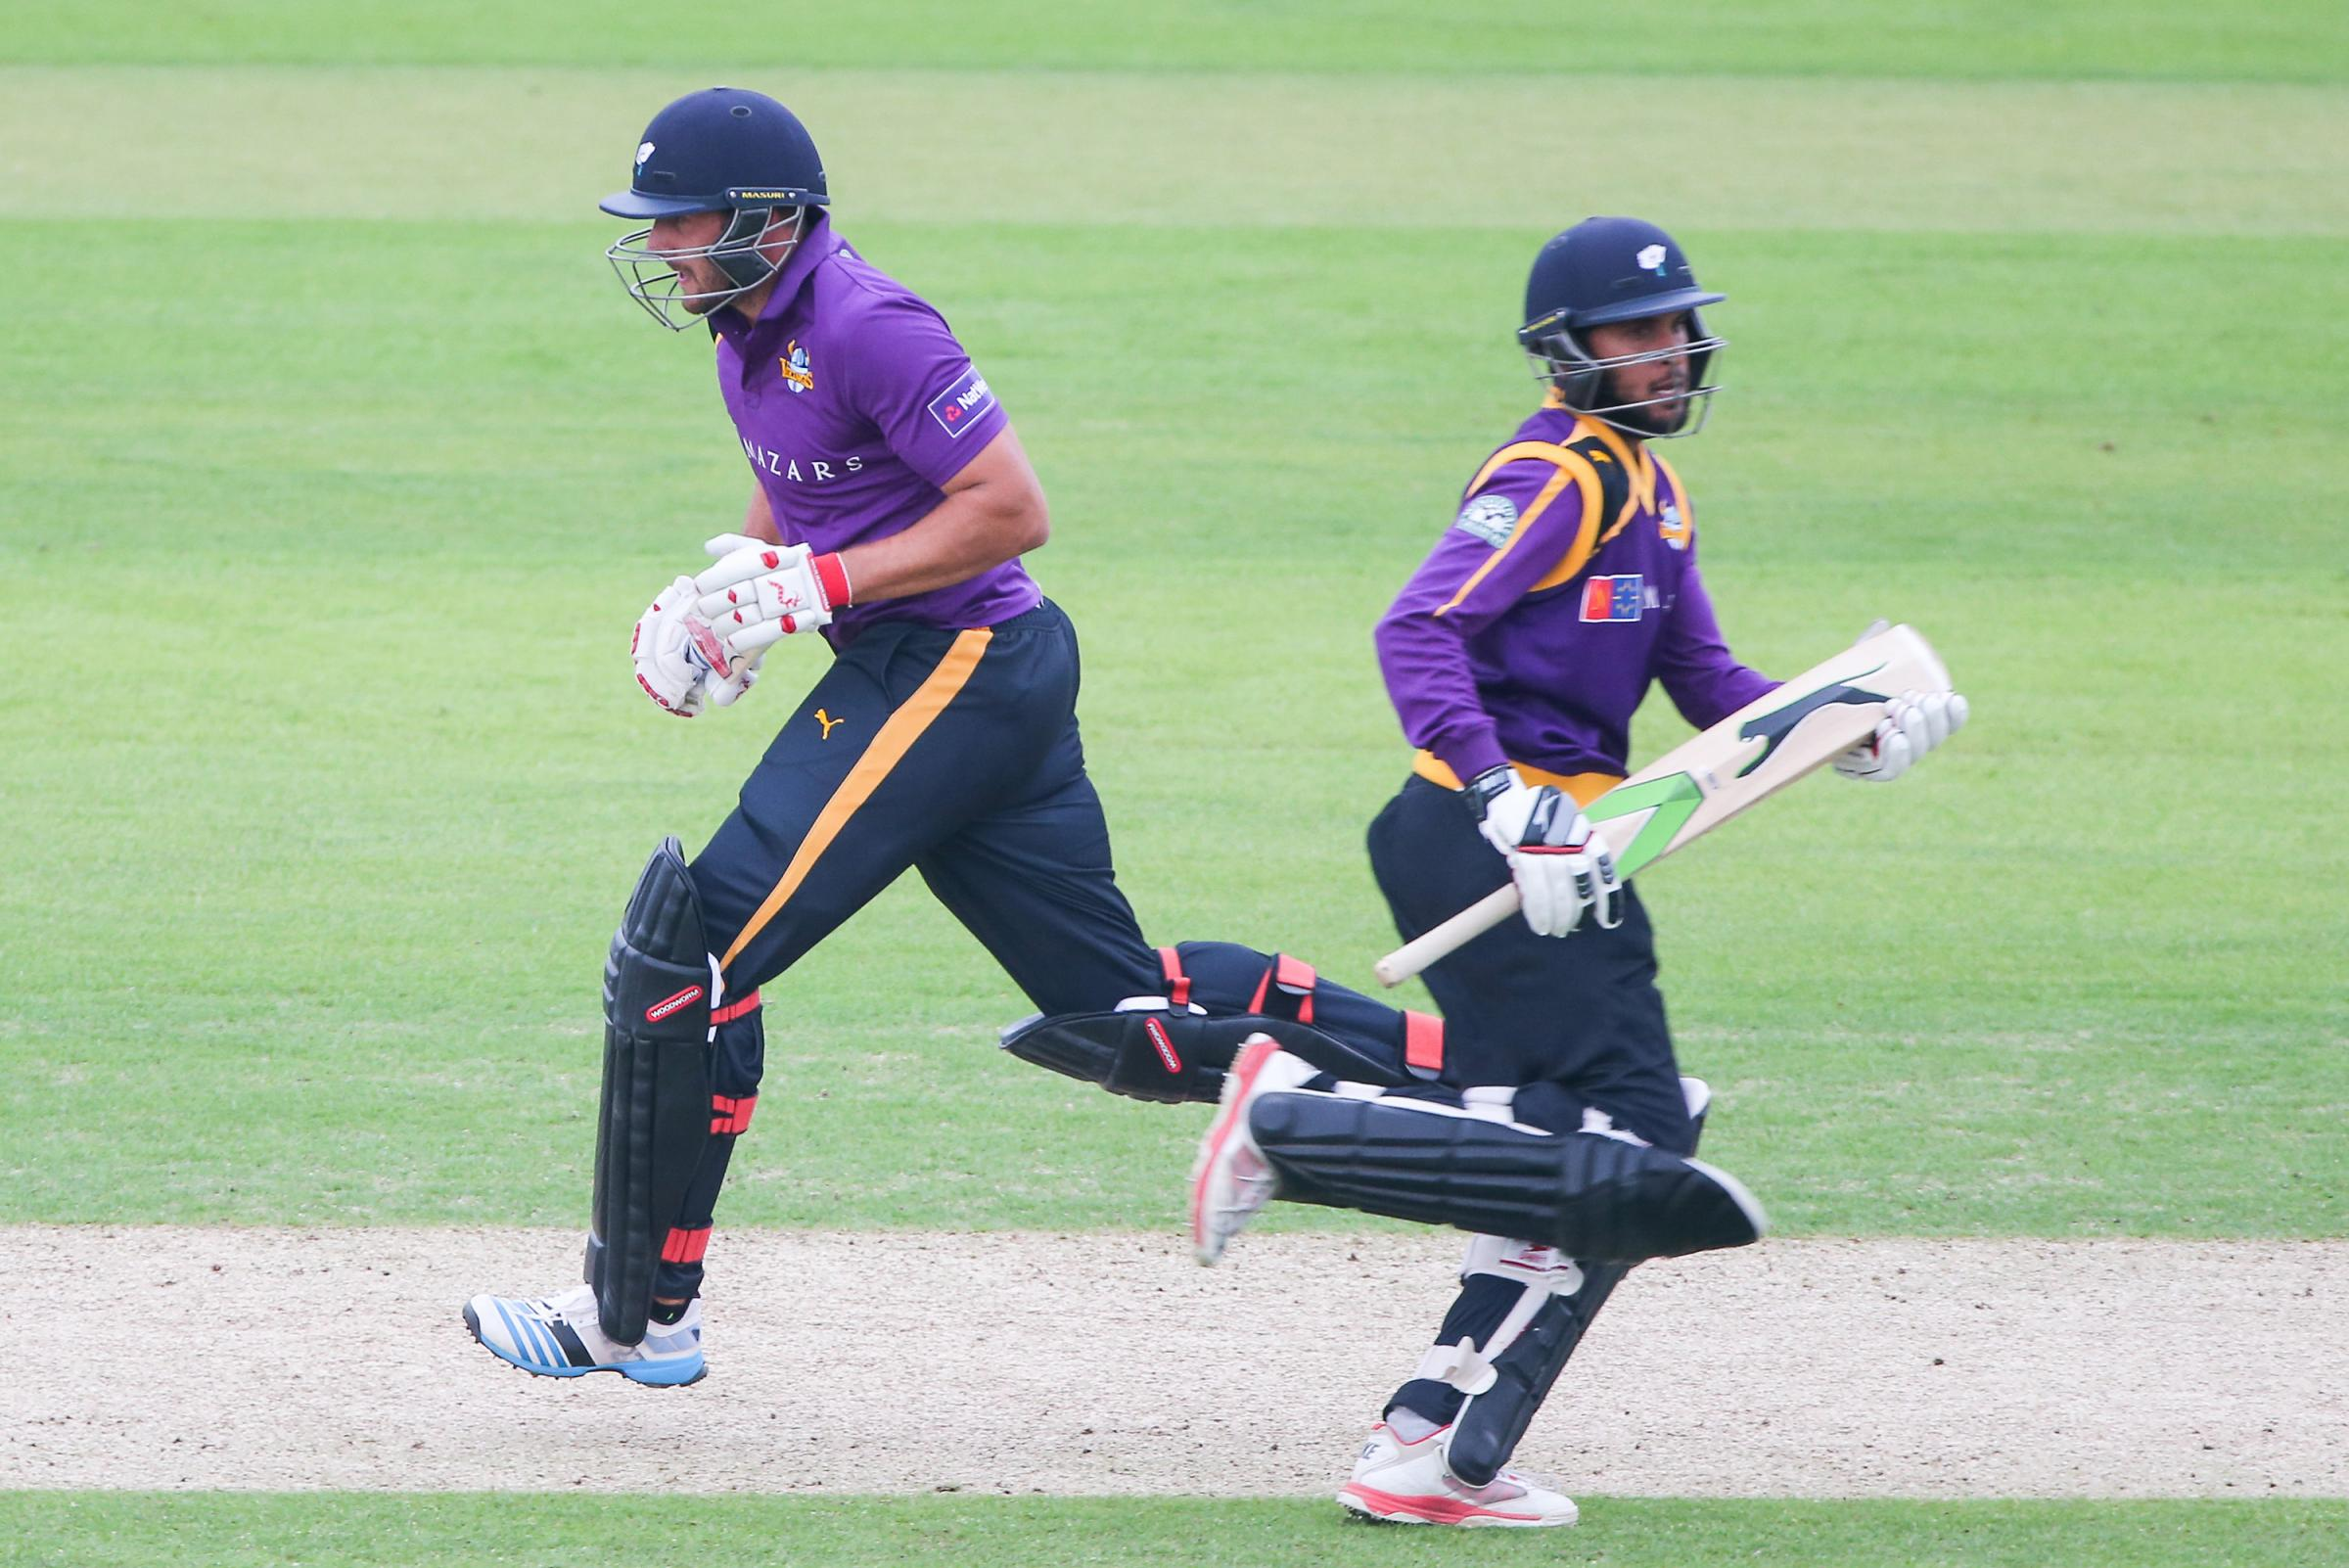 Bears blitz hits Yorkshire Vikings' quarter-final hopes in NatWest T20 Blast